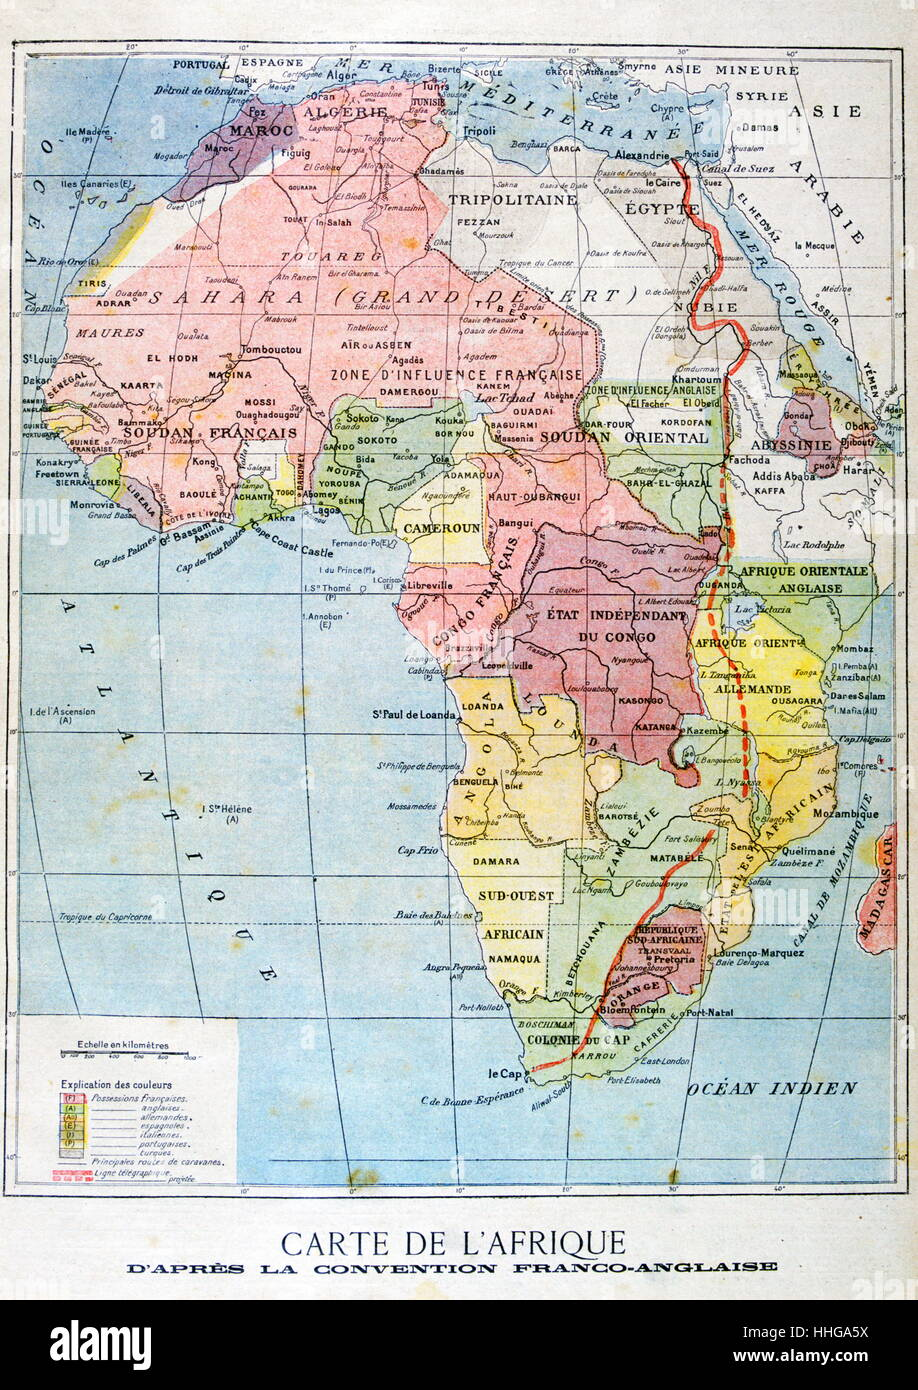 Africa French Colonial Map Stock Photos & Africa French ... on map of ethiopia in french, map of african countries, map of france in french, us map in french, map of european countries in french, map colonial africa, map of madagascar in french, map of belgium in french, map of switzerland in french, map of casablanca in french, south america map in french, map of french speaking countries, map of caribbean in french, nutrition label in french, map of world in french, map of north america in french, map of canada in french, map of seychelles in french, map of central america in french, united states map in french,